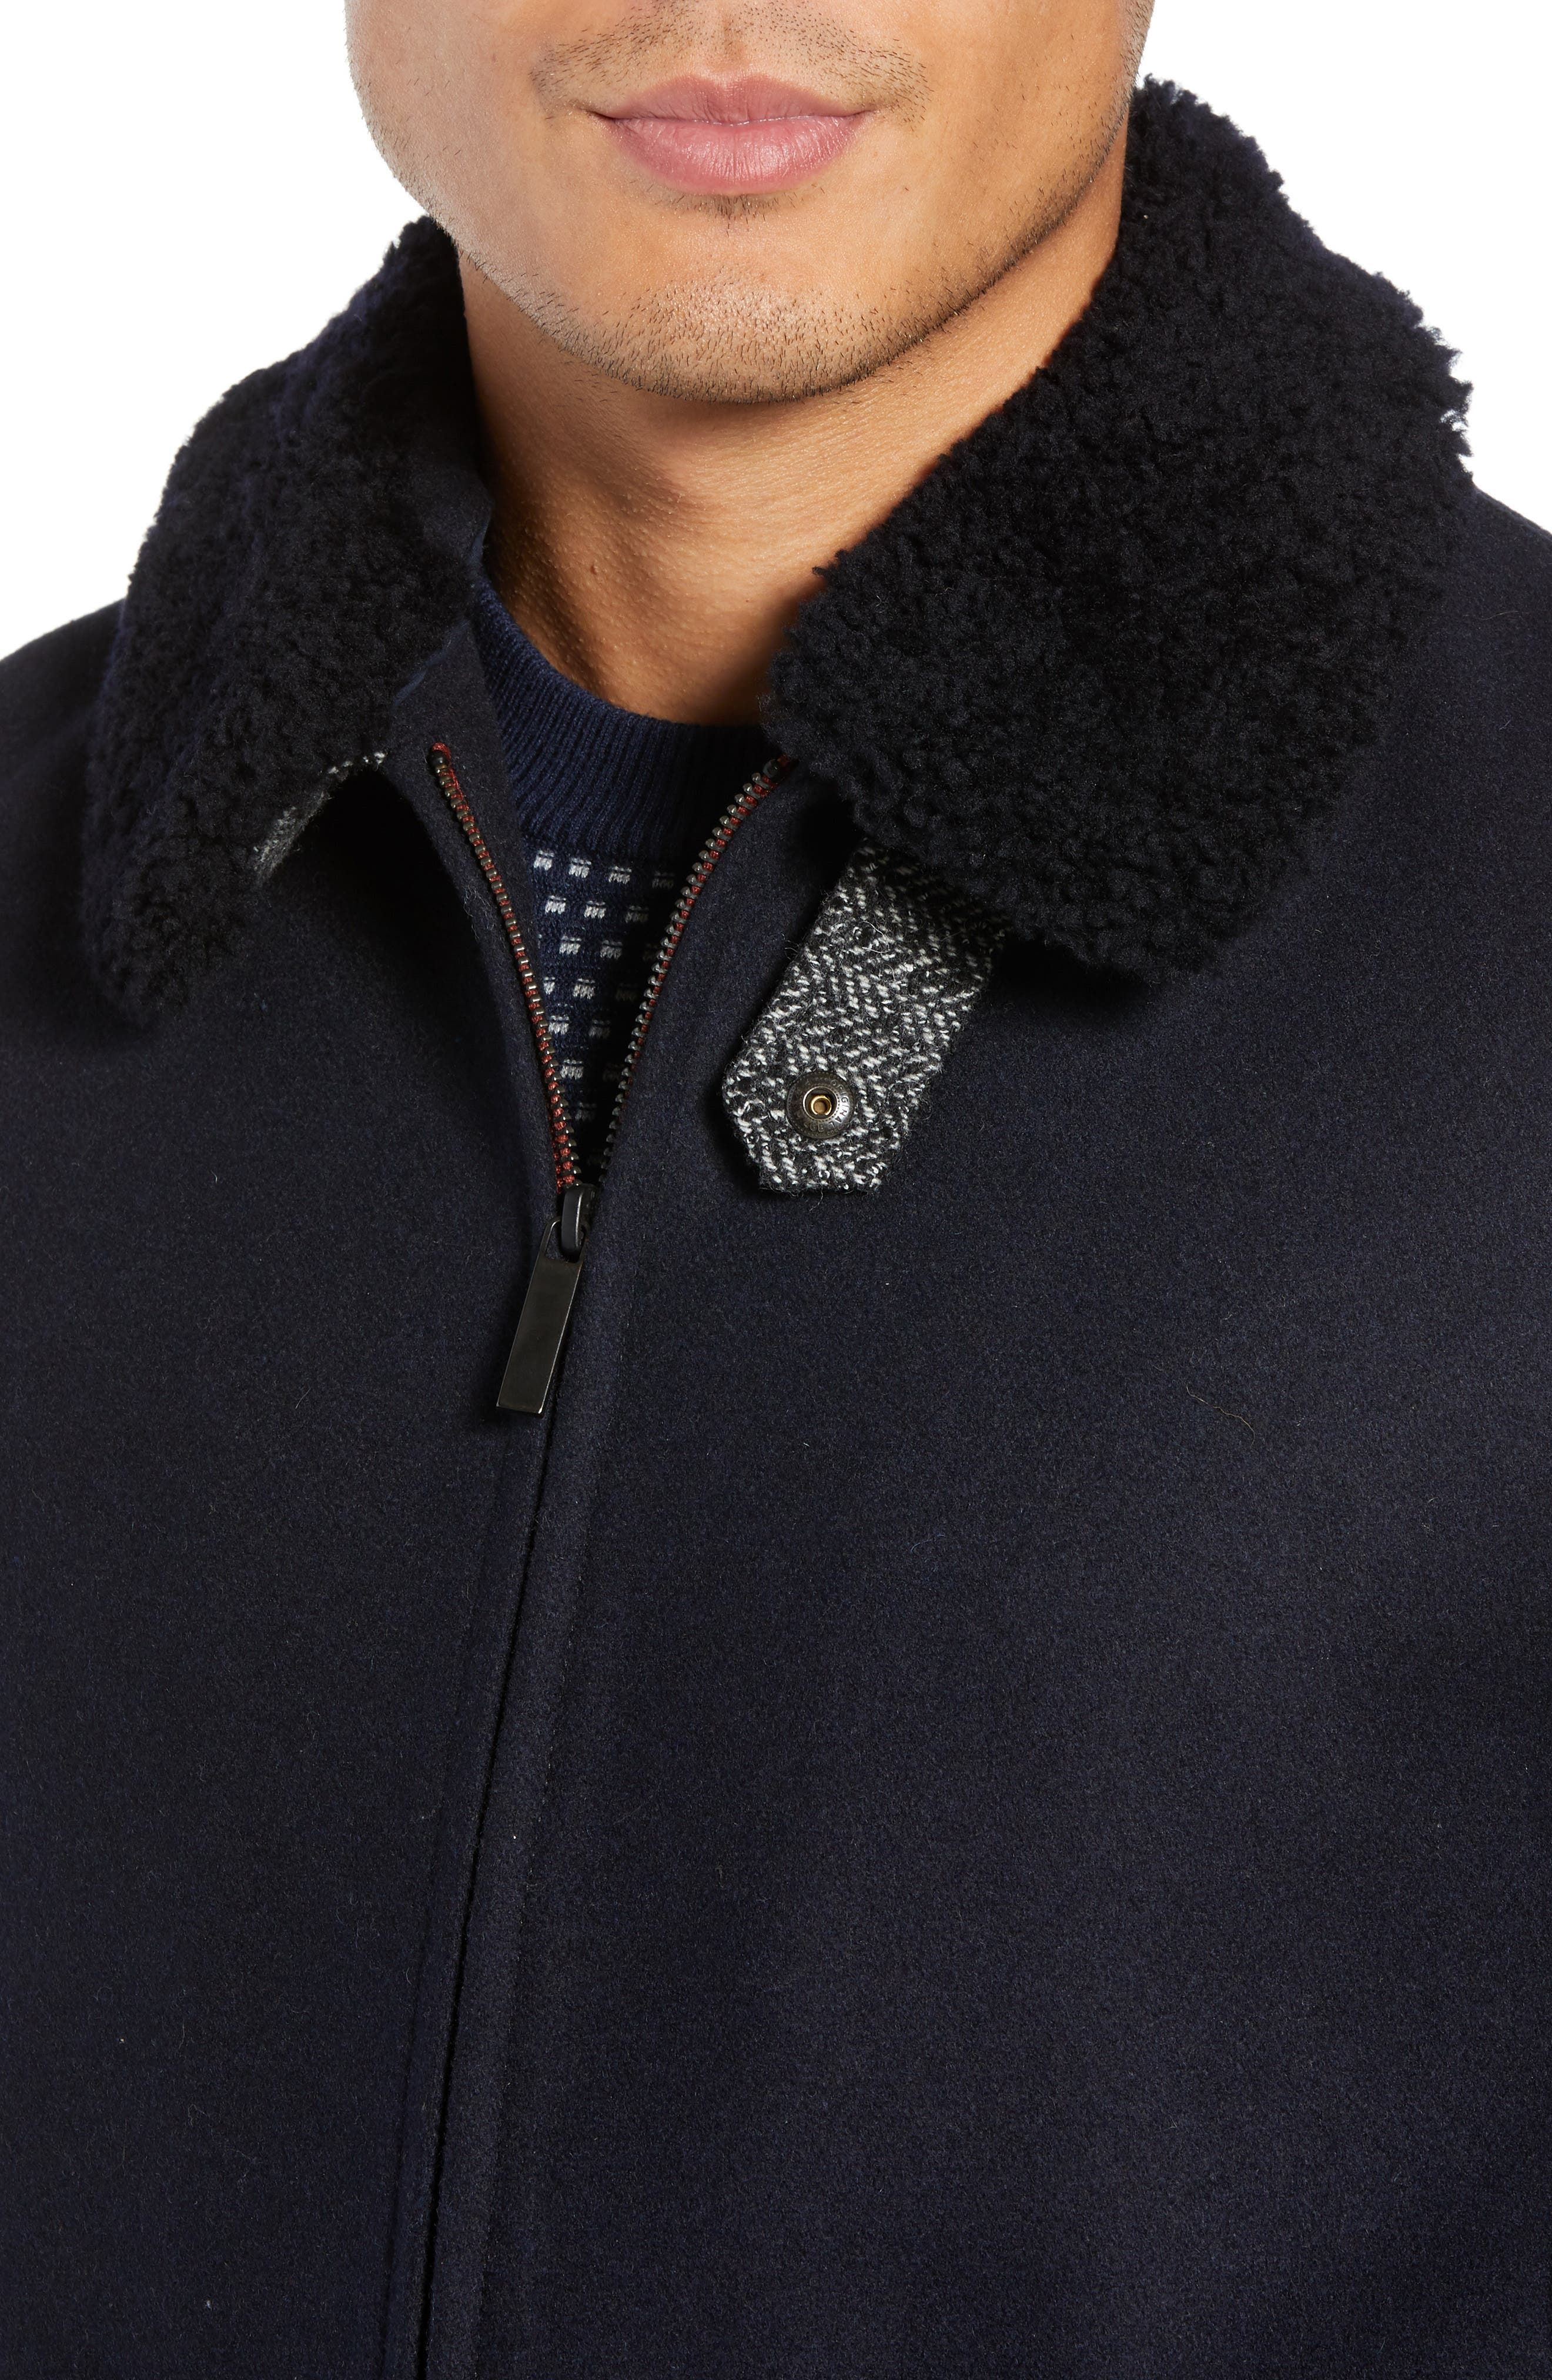 Faux Shearling Trim Wool Blend Jacket,                             Alternate thumbnail 4, color,                             NAVY